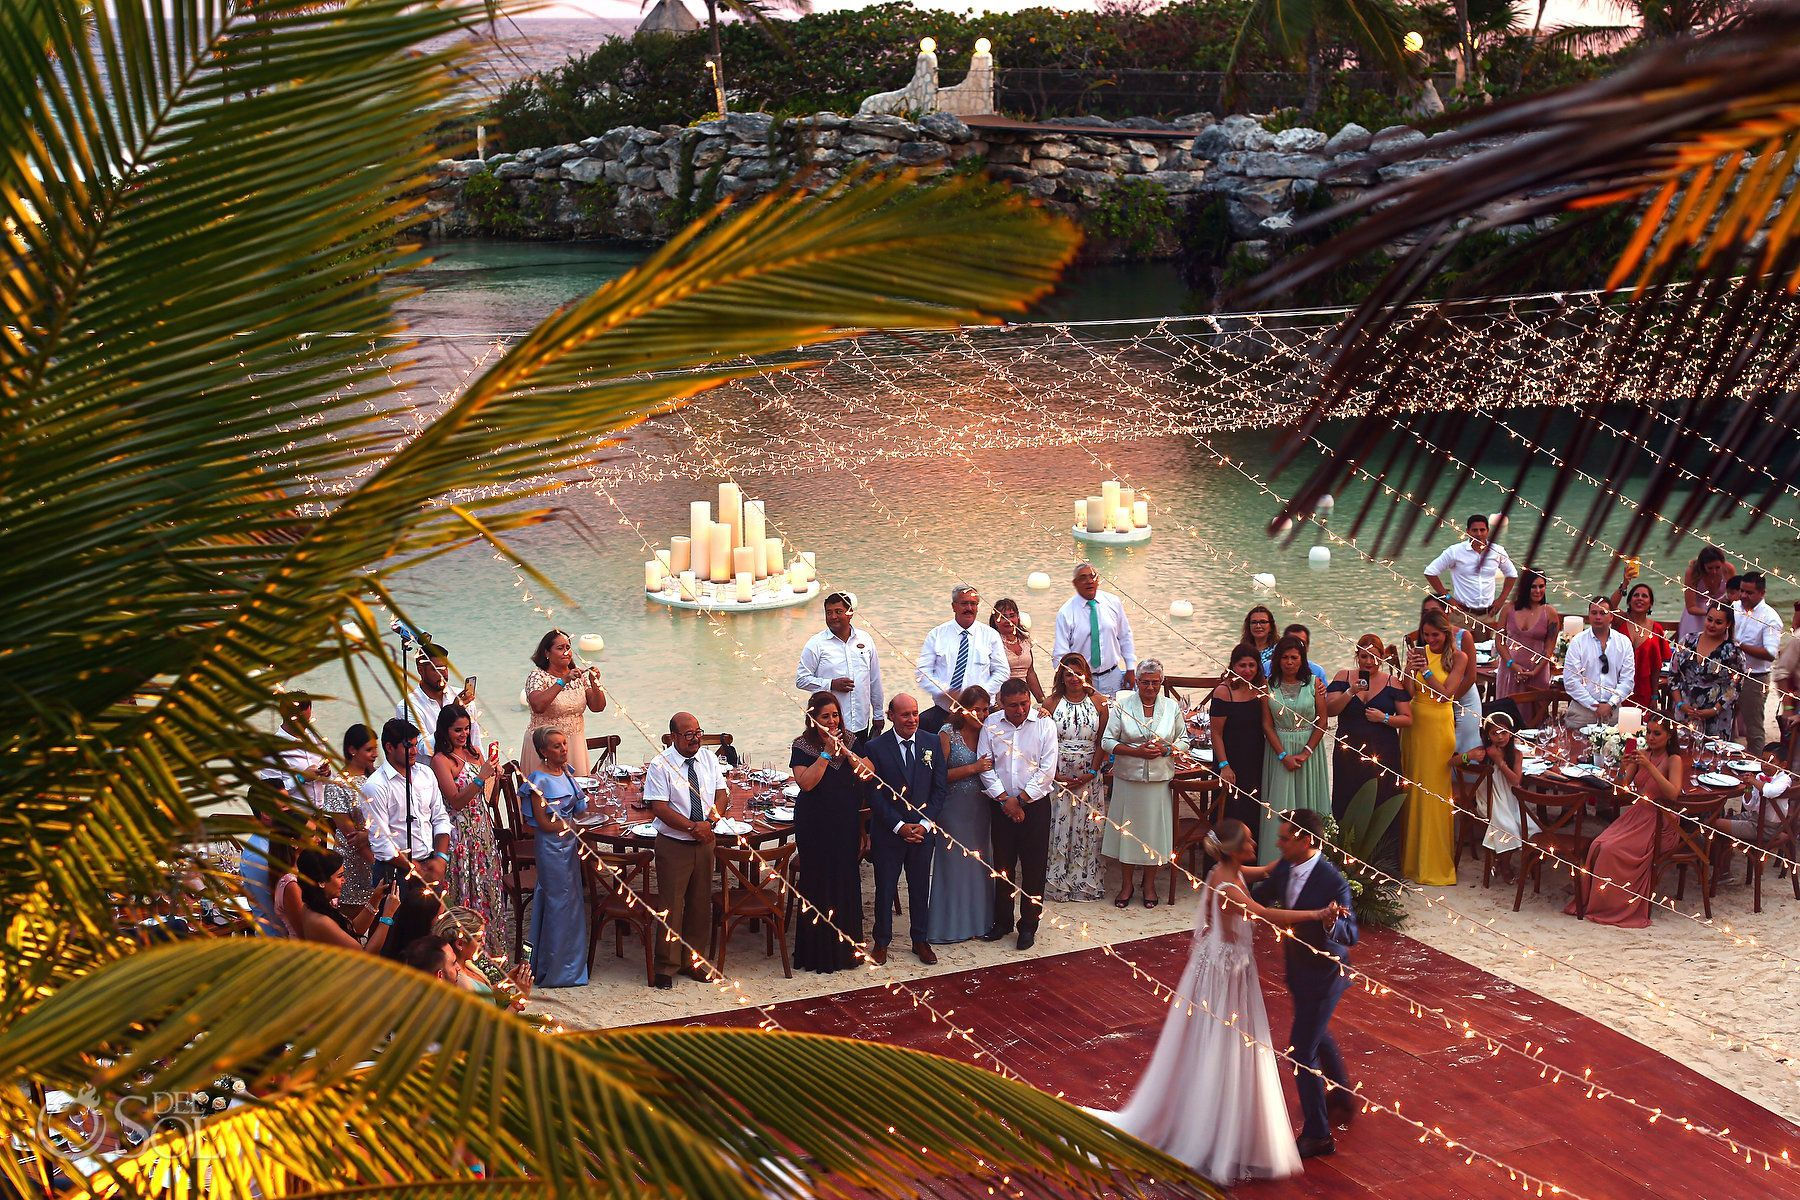 Hotel Xcaret Mexico Weddings Del Sol Photography Mexico Wedding Riviera Maya Wedding Venue Riviera Maya Weddings